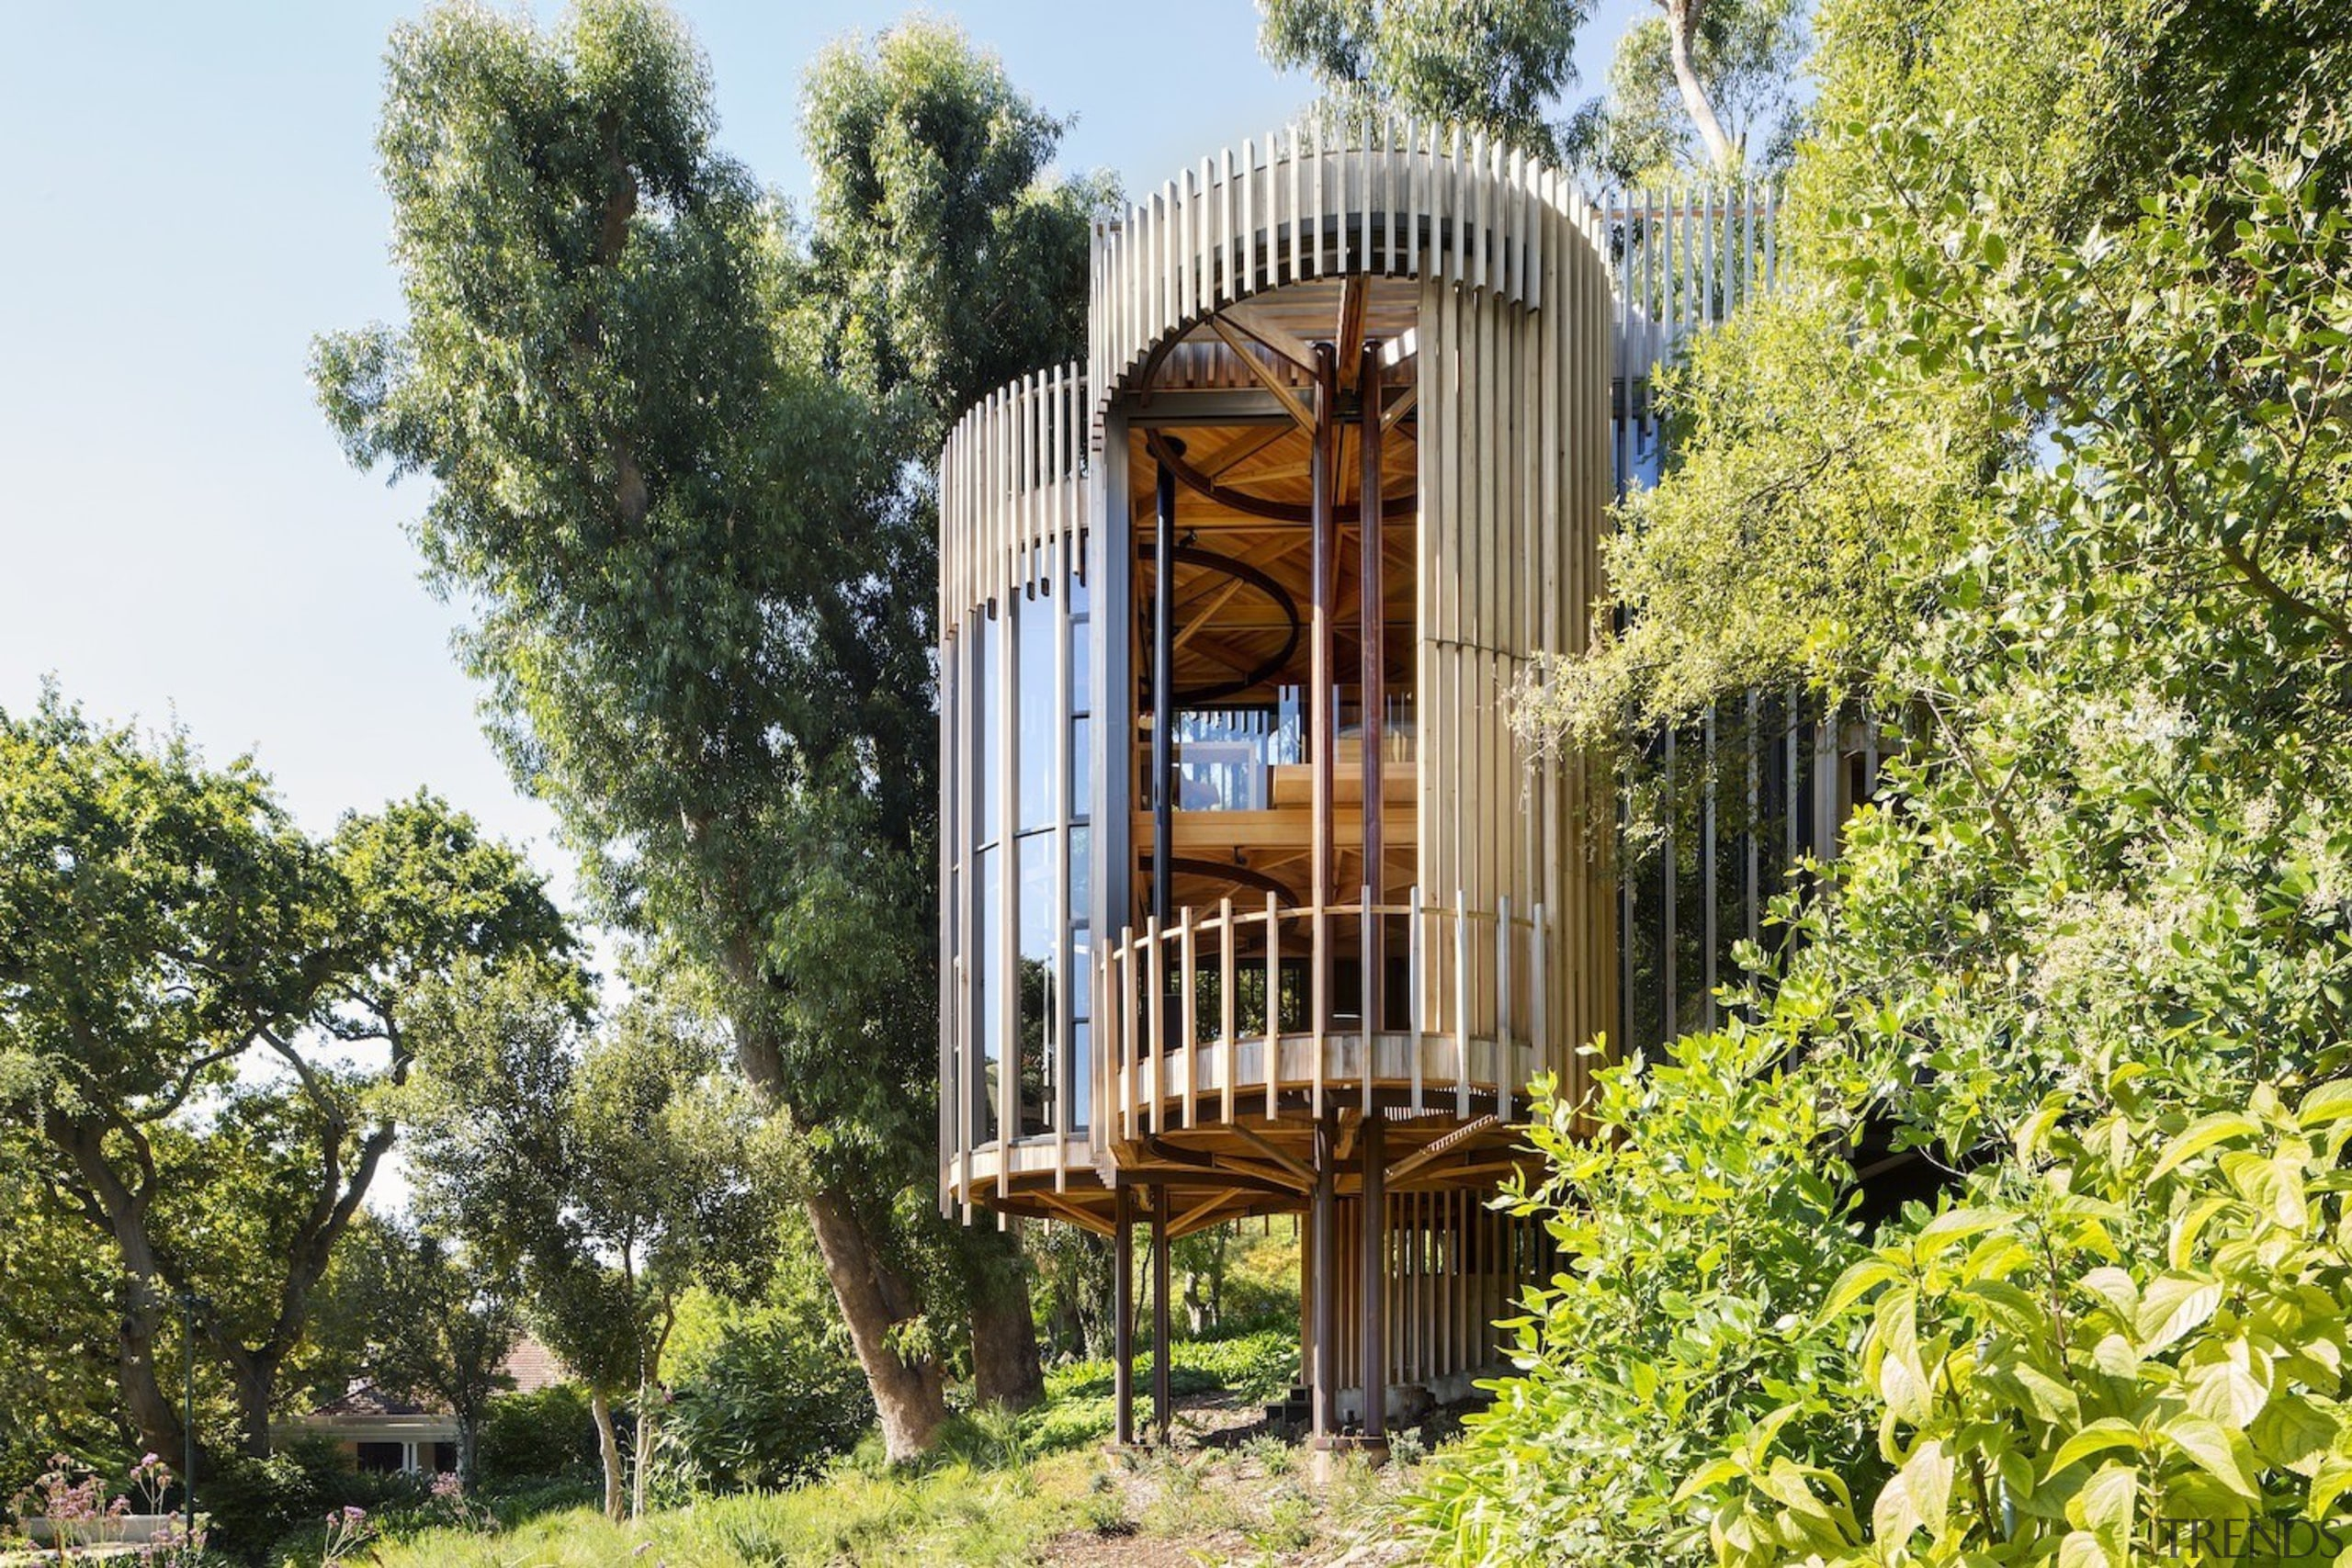 Architect: Malan VorsterPhotography by Adam Letch, Micky building, cottage, home, house, outdoor structure, property, real estate, tree, brown